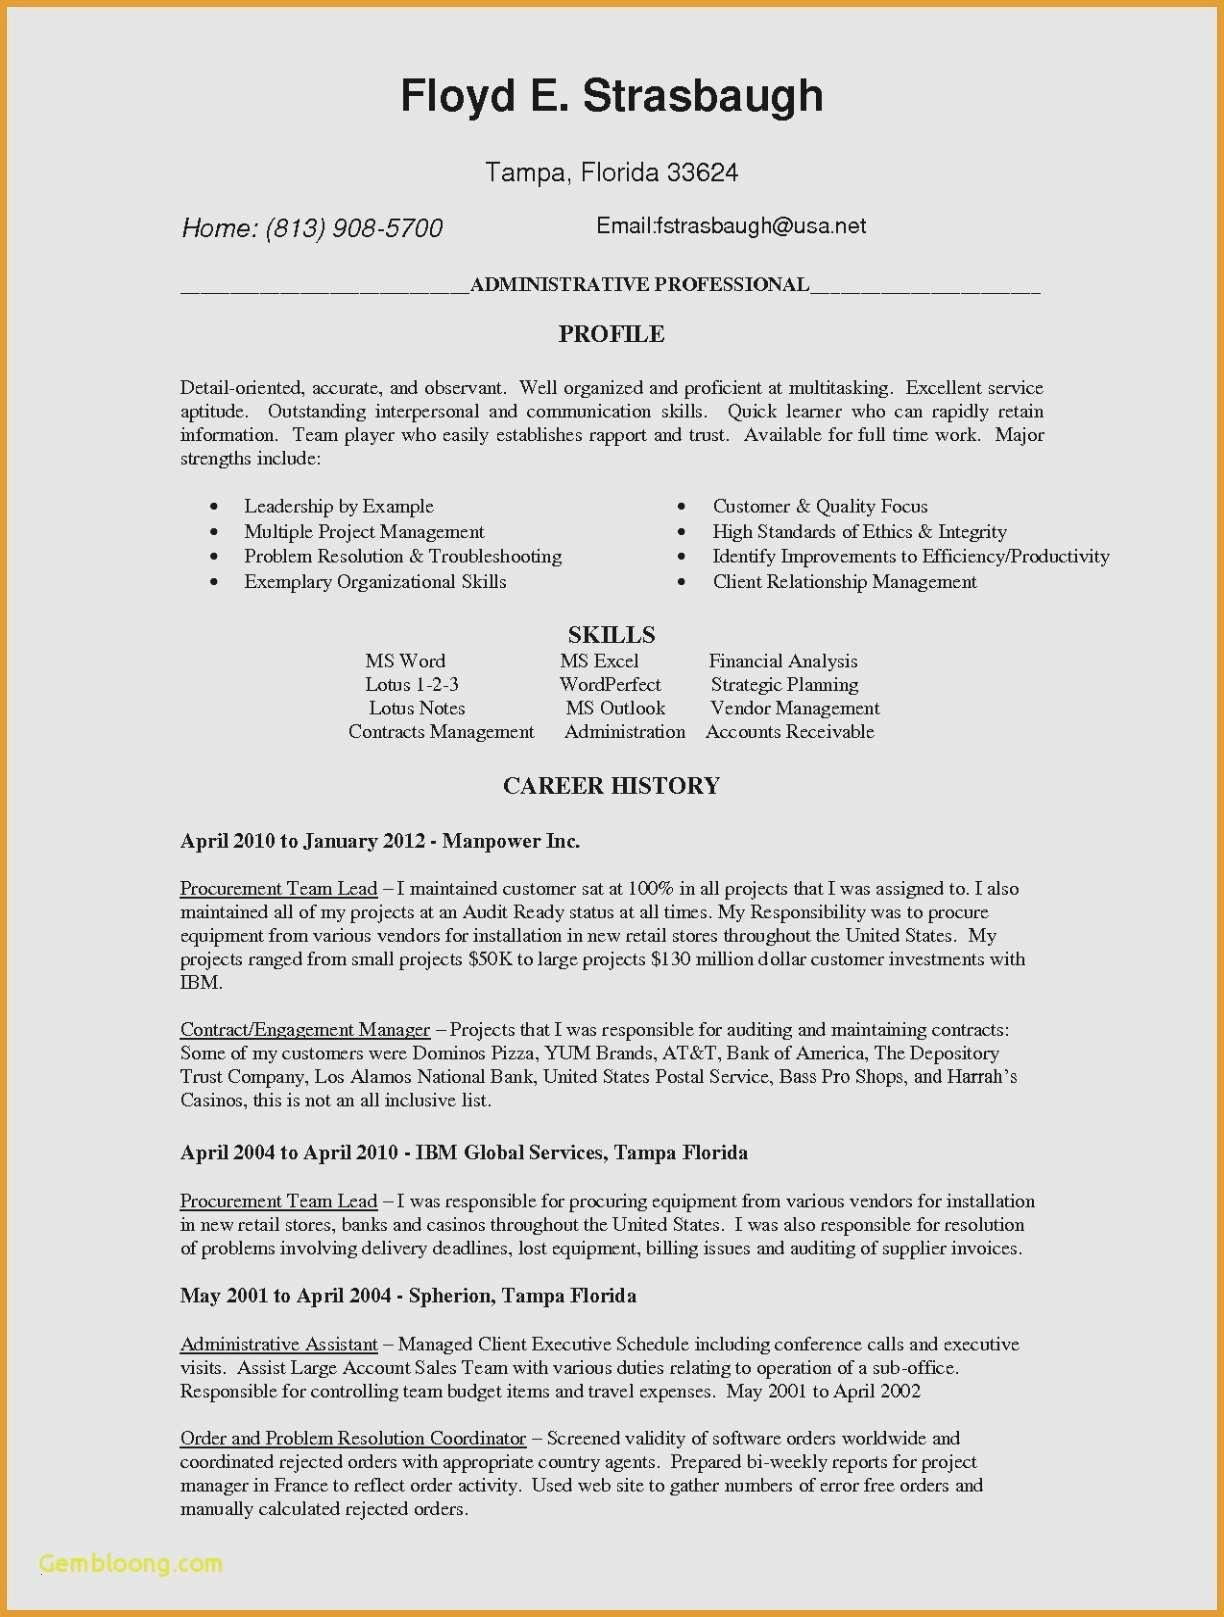 Global Player Liste Ncci Com Worksheets Briefencounters Worksheet Template Samples